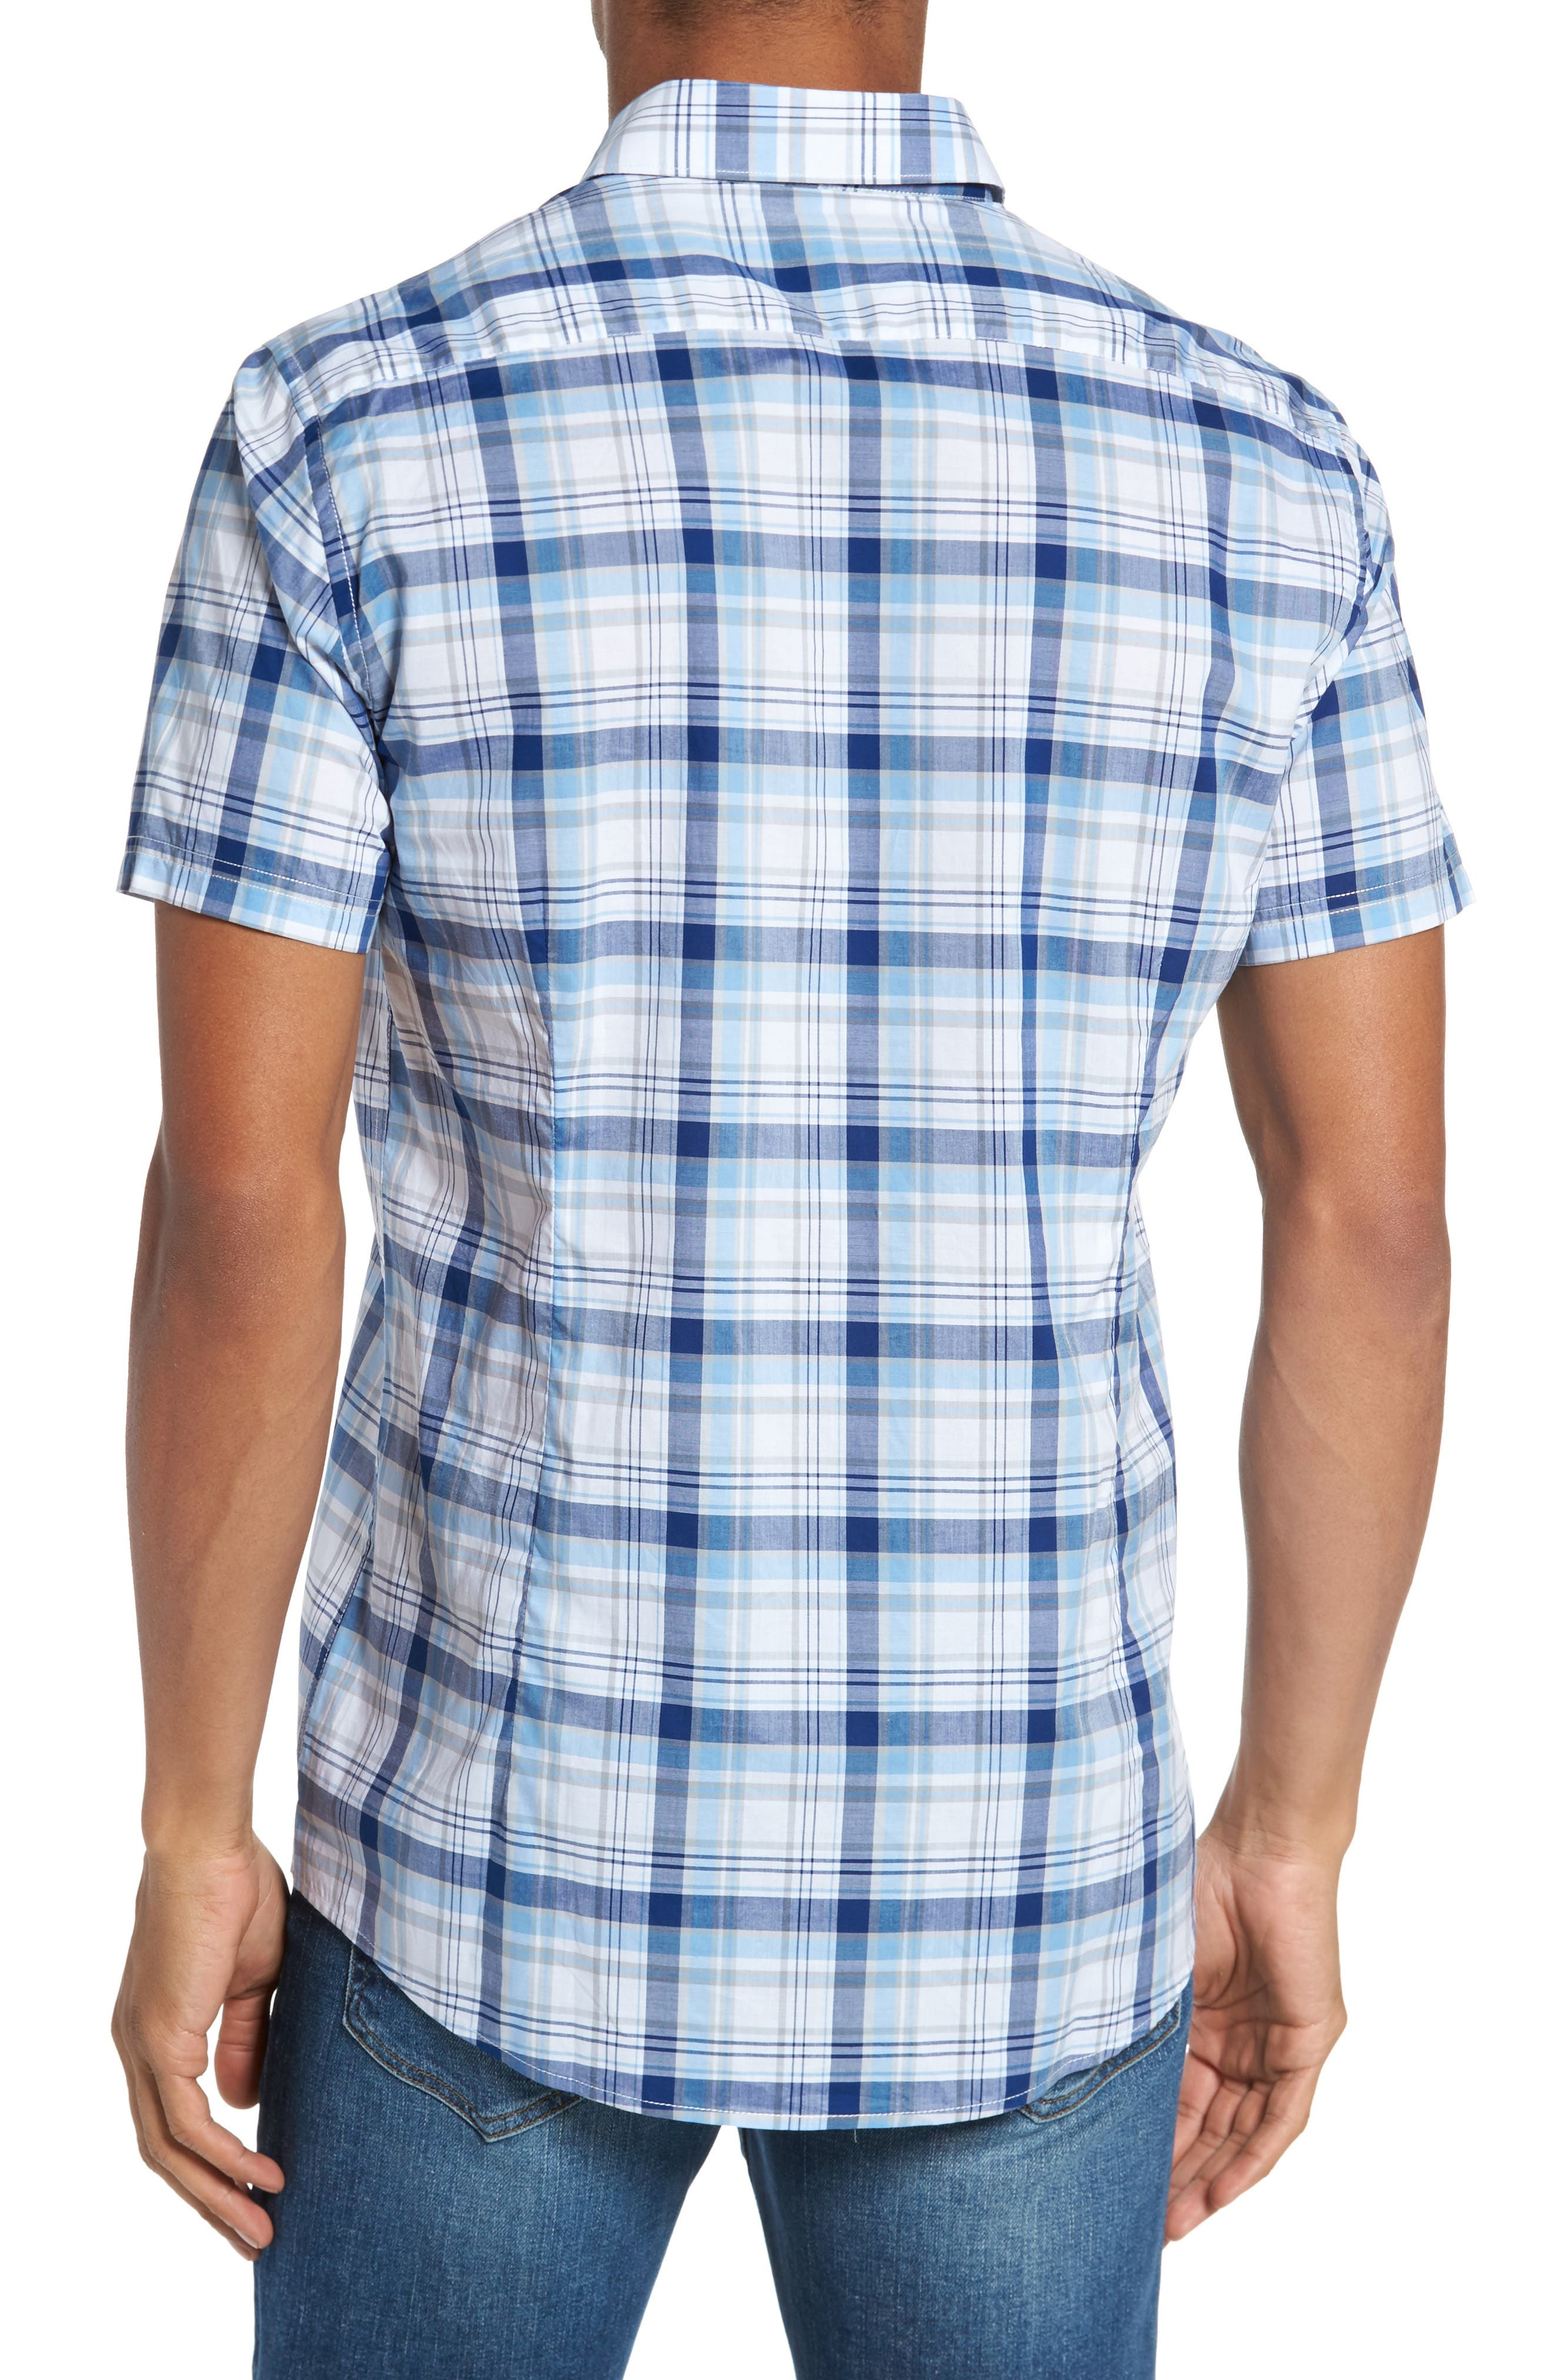 Gerald Tailored Fit Plaid Sport Shirt,                             Alternate thumbnail 2, color,                             Blue